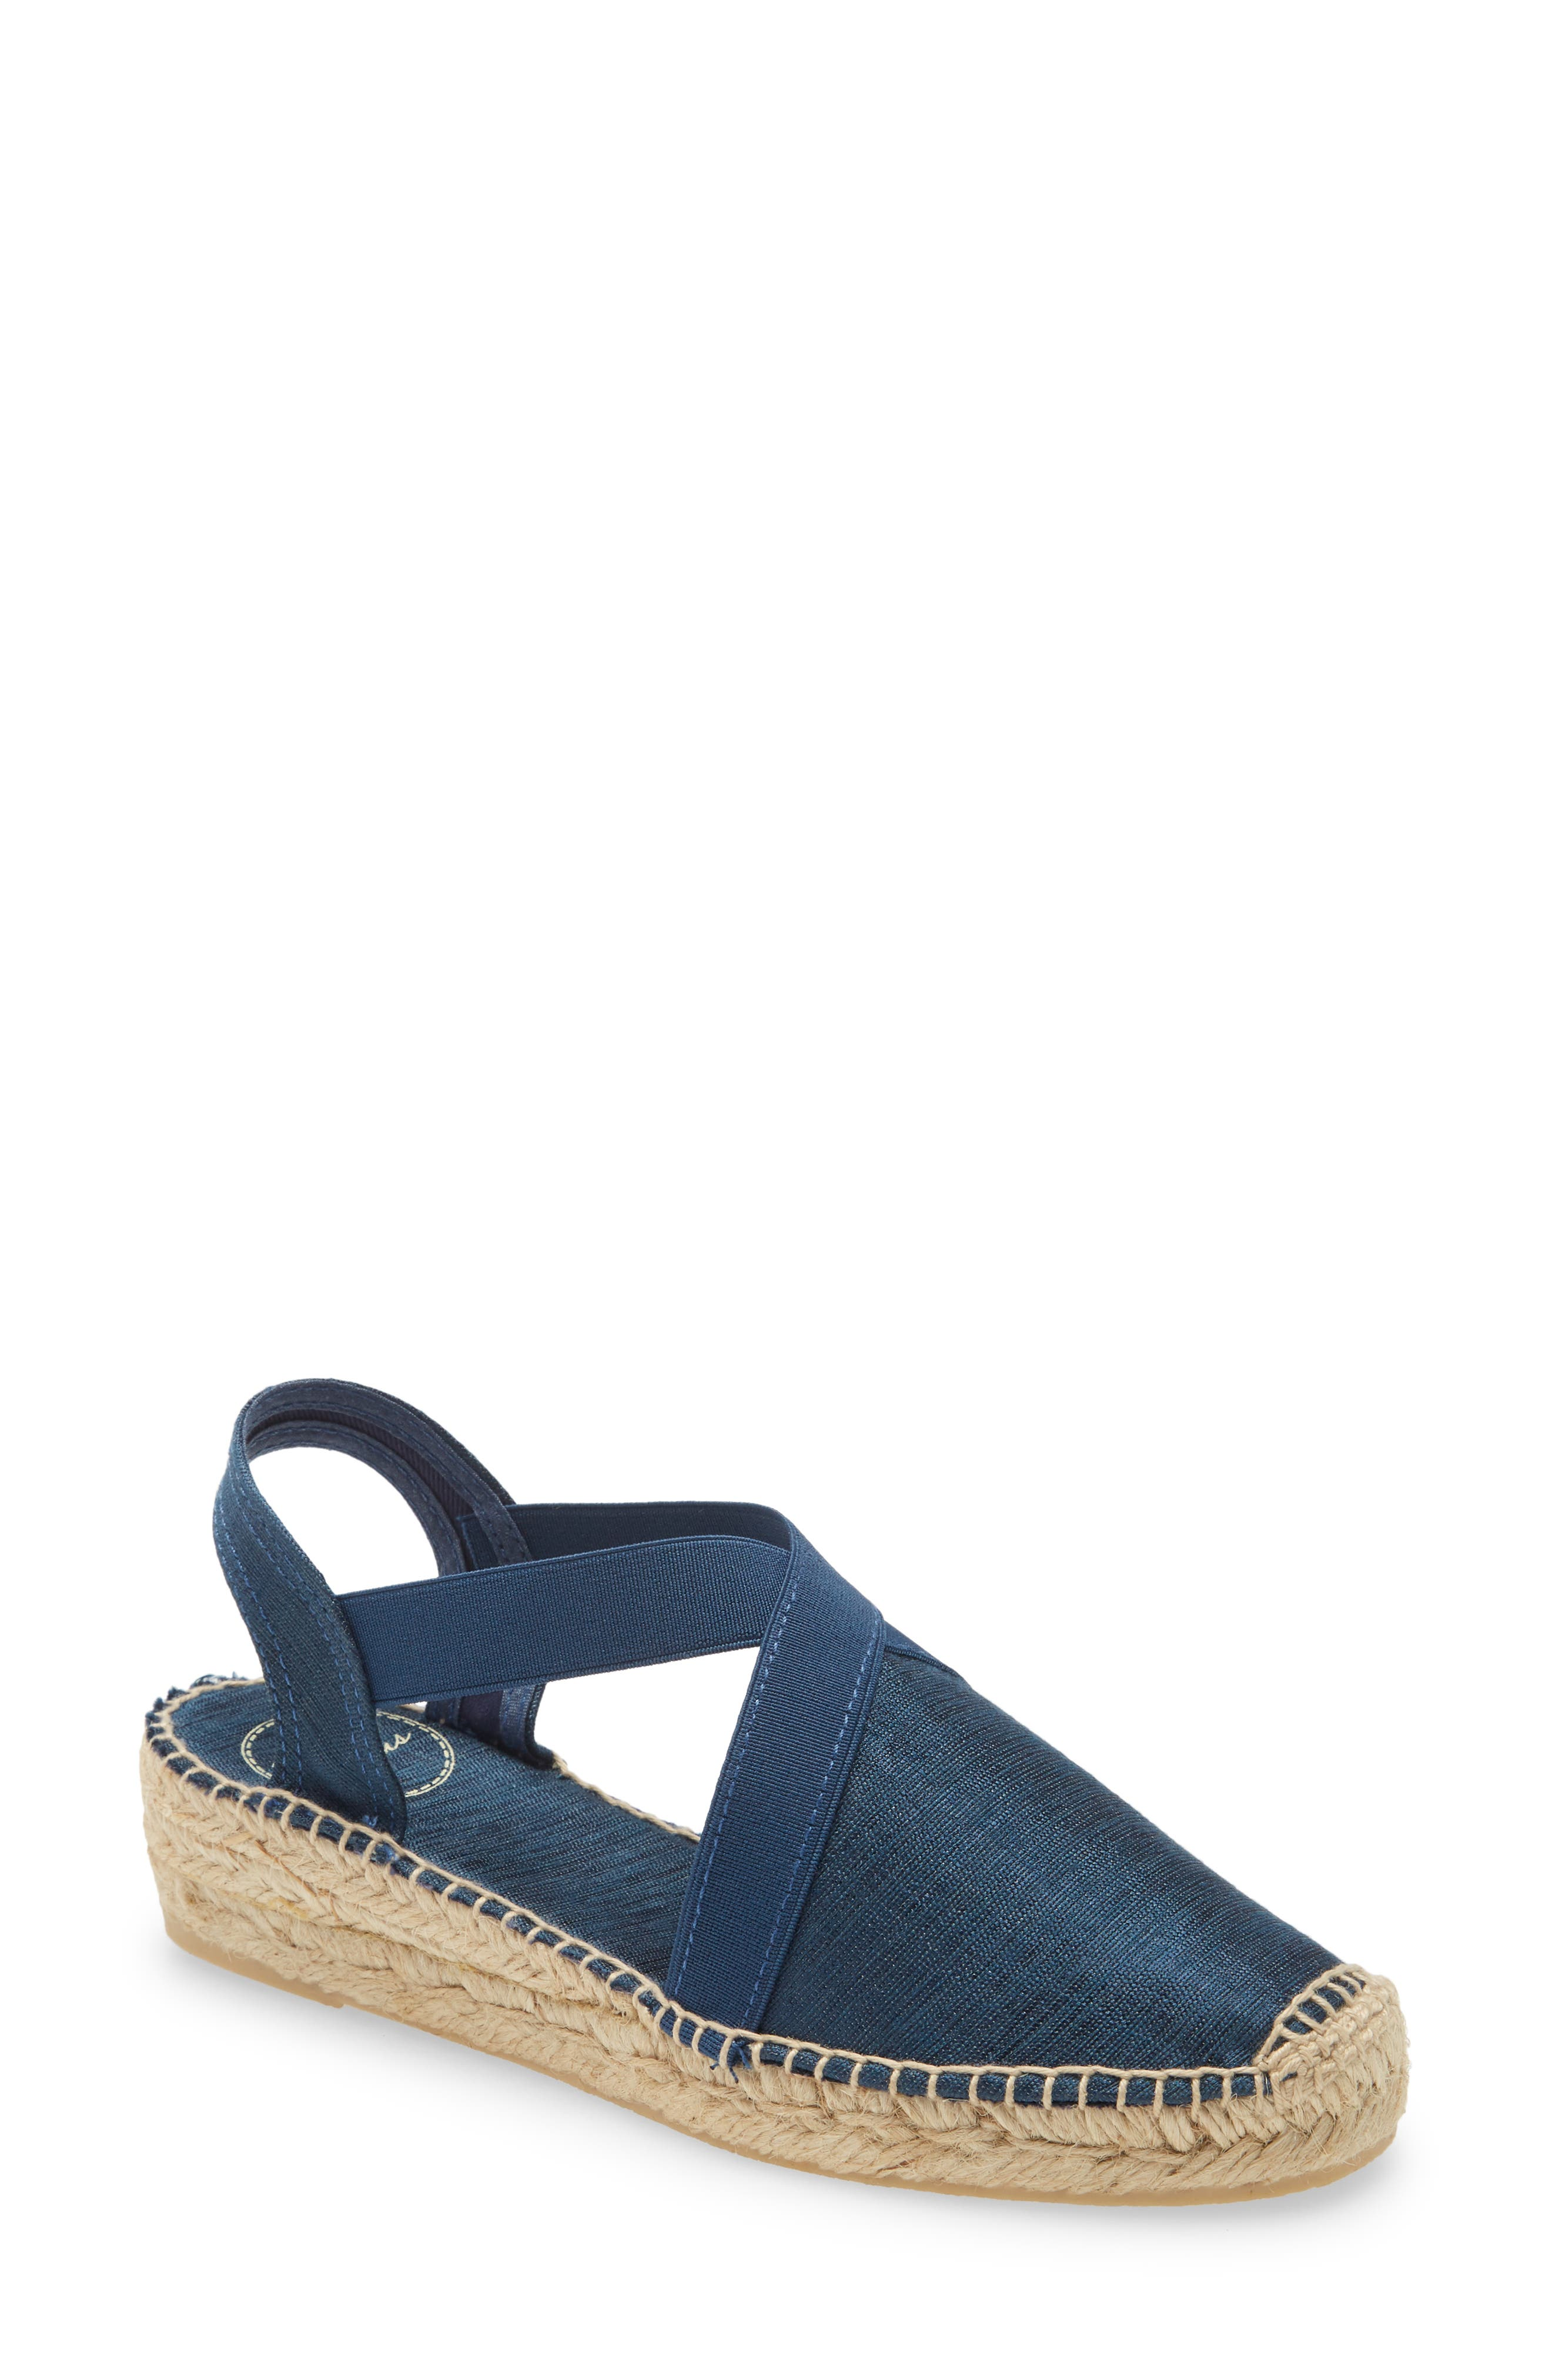 Tonal elastic crossover straps ease the fit of a breezy slingback sandal styled with a closed toe and ropy espadrille trim. Style Name: Toni Pons \\\'Vic\\\' Espadrille Slingback Sandal (Women). Style Number: 1122743. Available in stores.